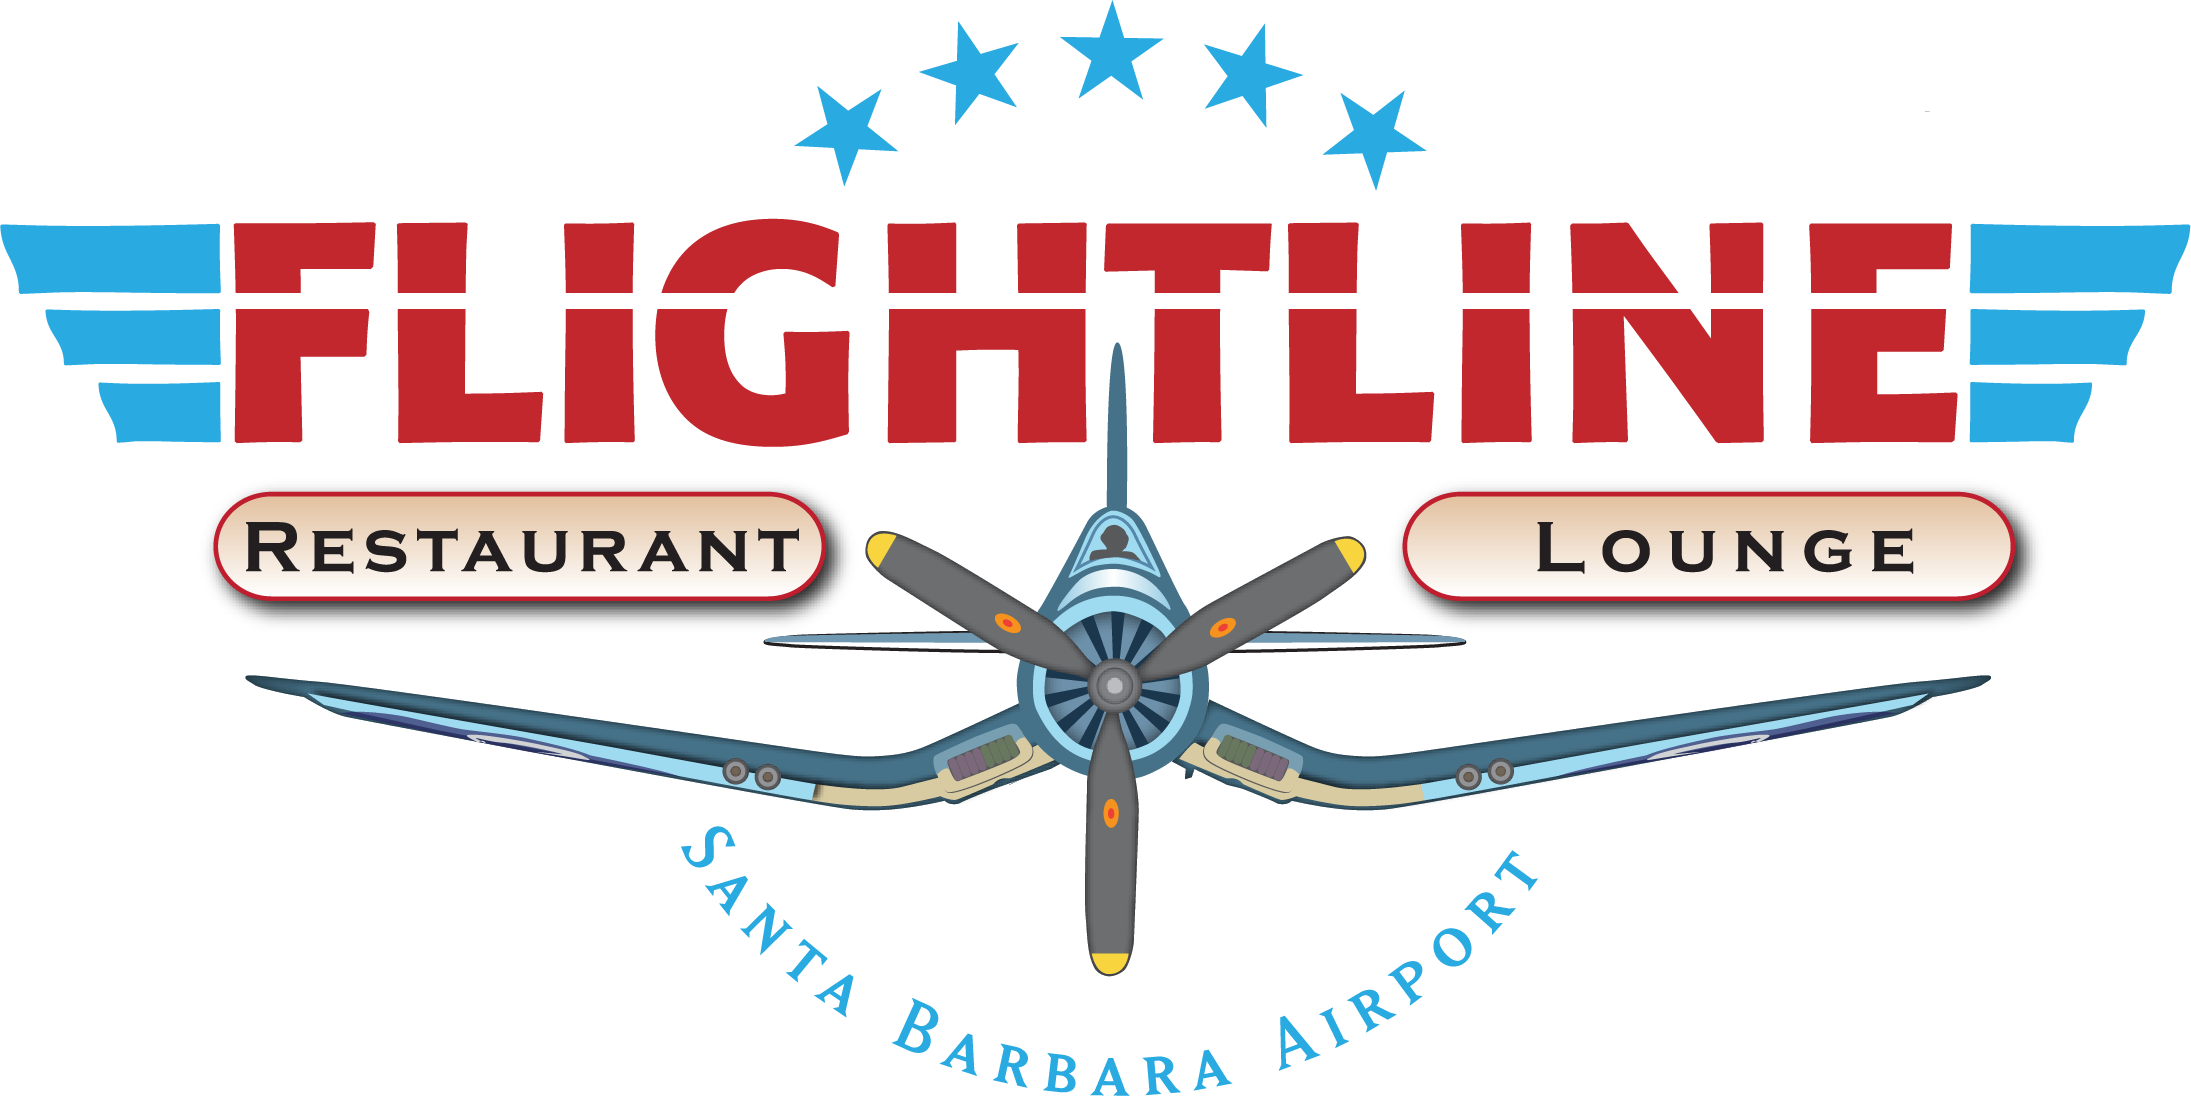 Flightline Restaurant Santa Barbara Airport